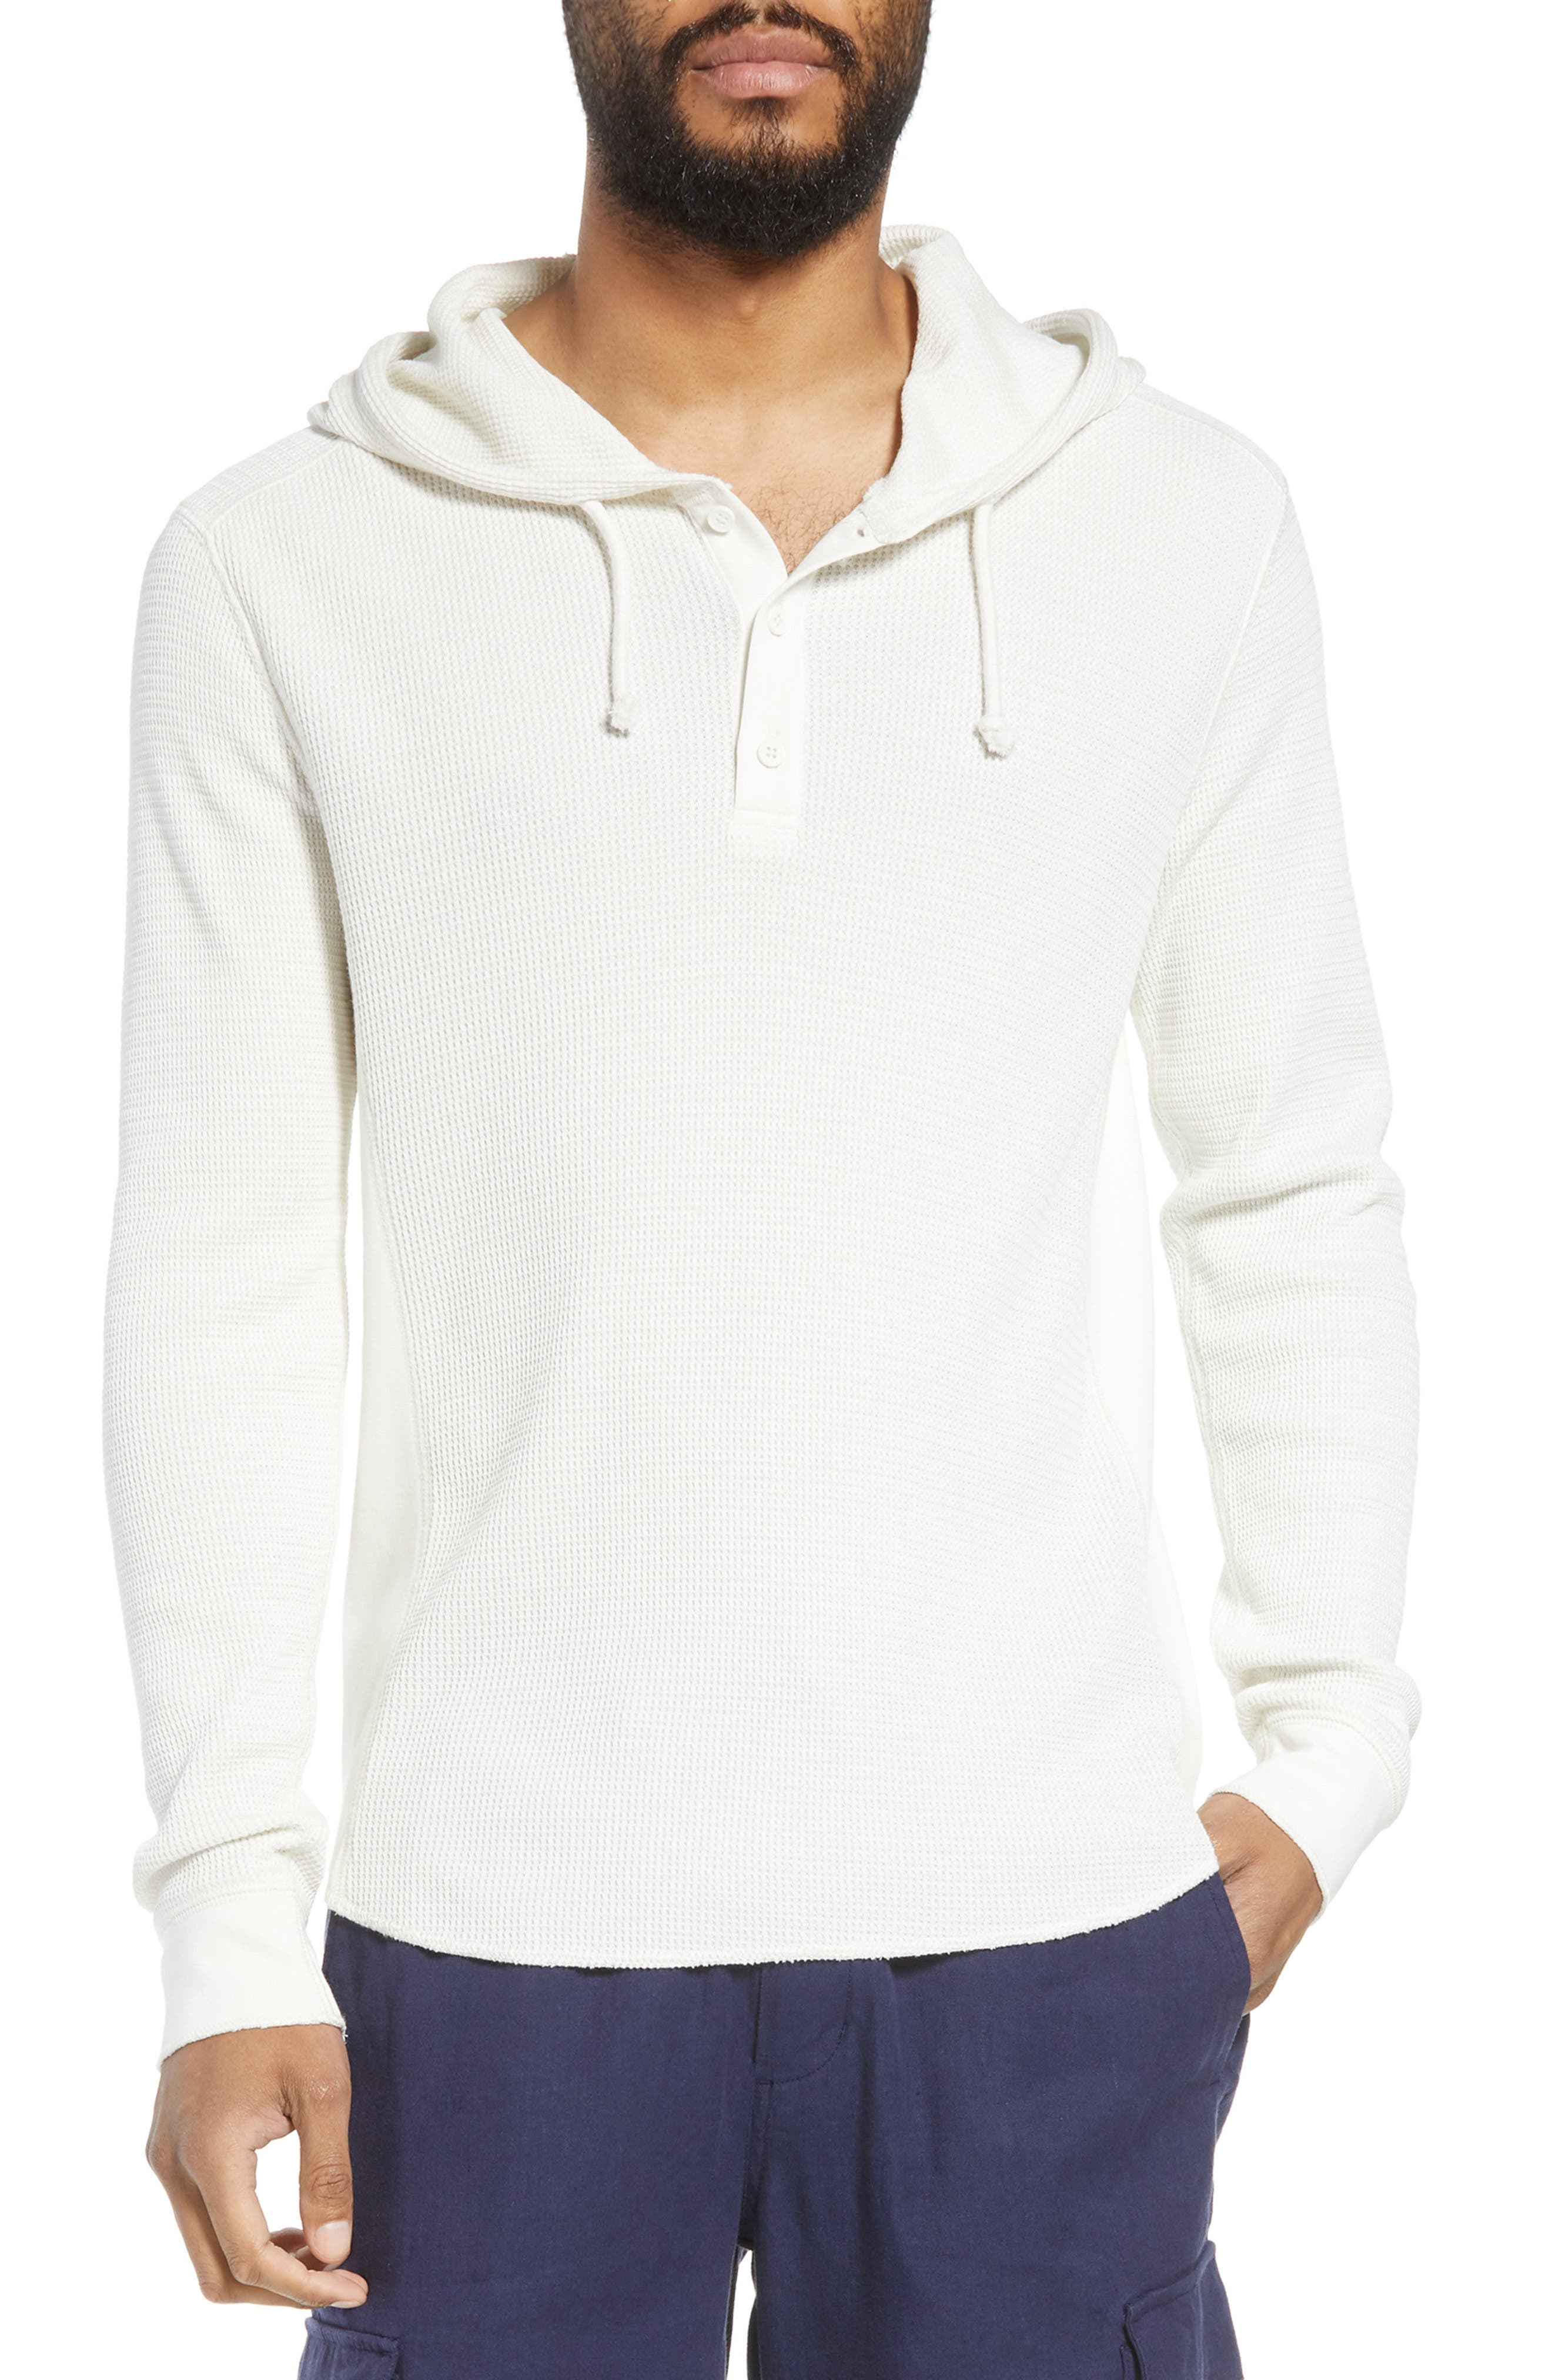 Regular Fit Thermal Knit Pullover Hoodie,                         Main,                         color, 110